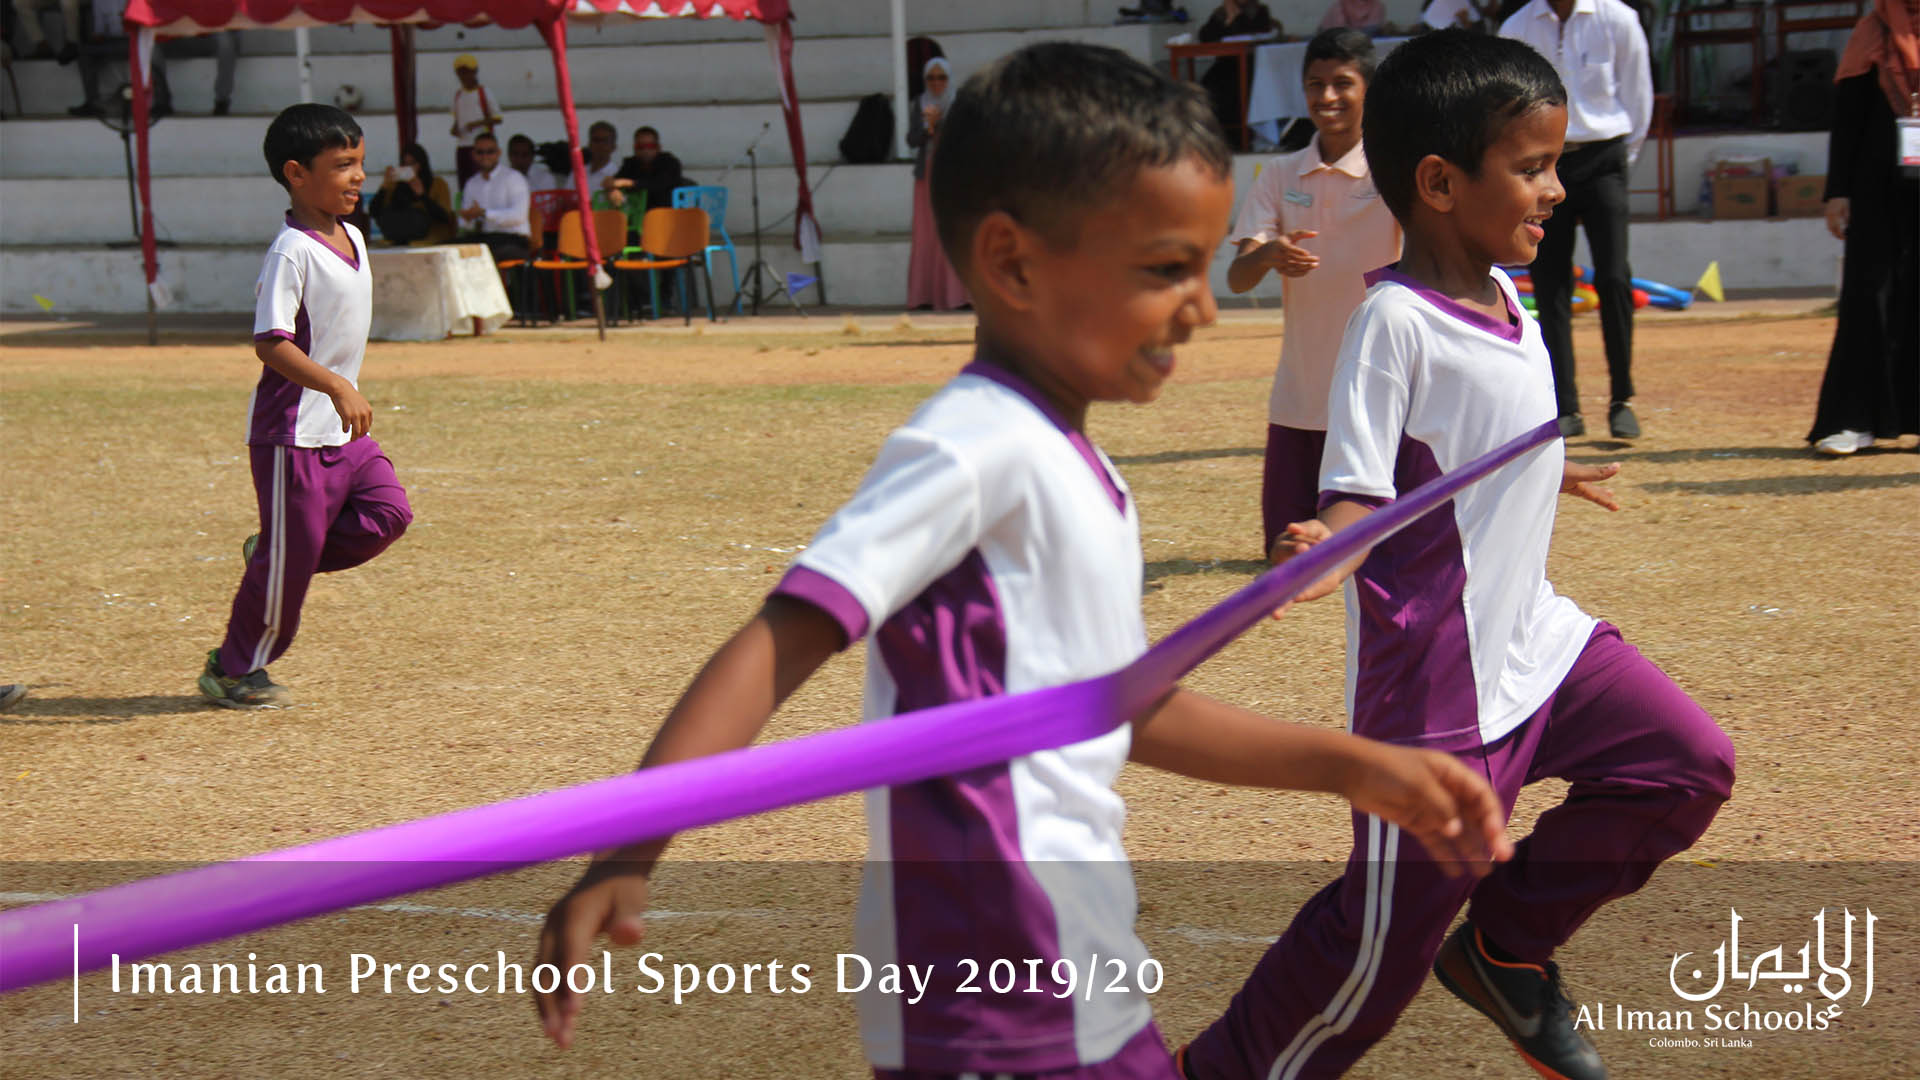 Images from the Preschool Section Sportsmeet 2019/20